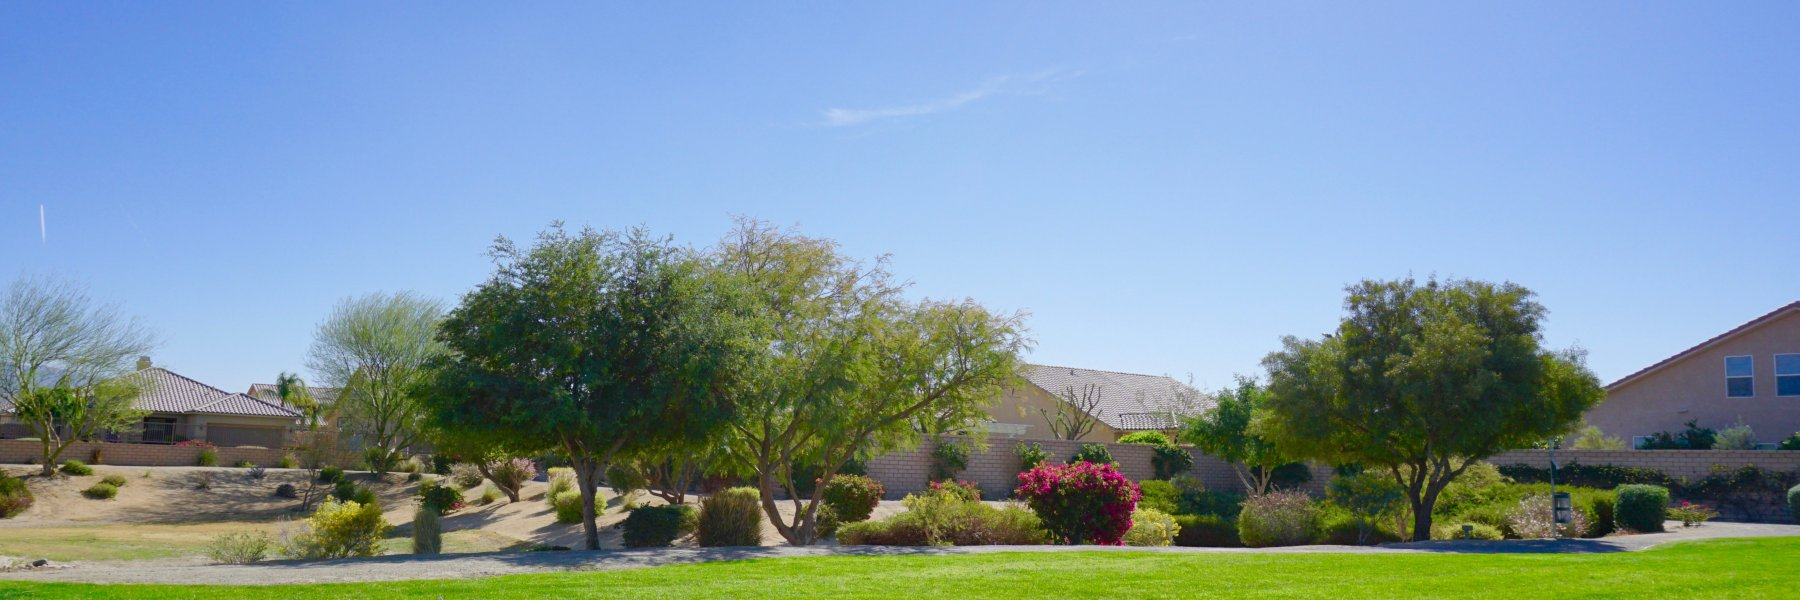 Foxstone is a community of homes in Indio California